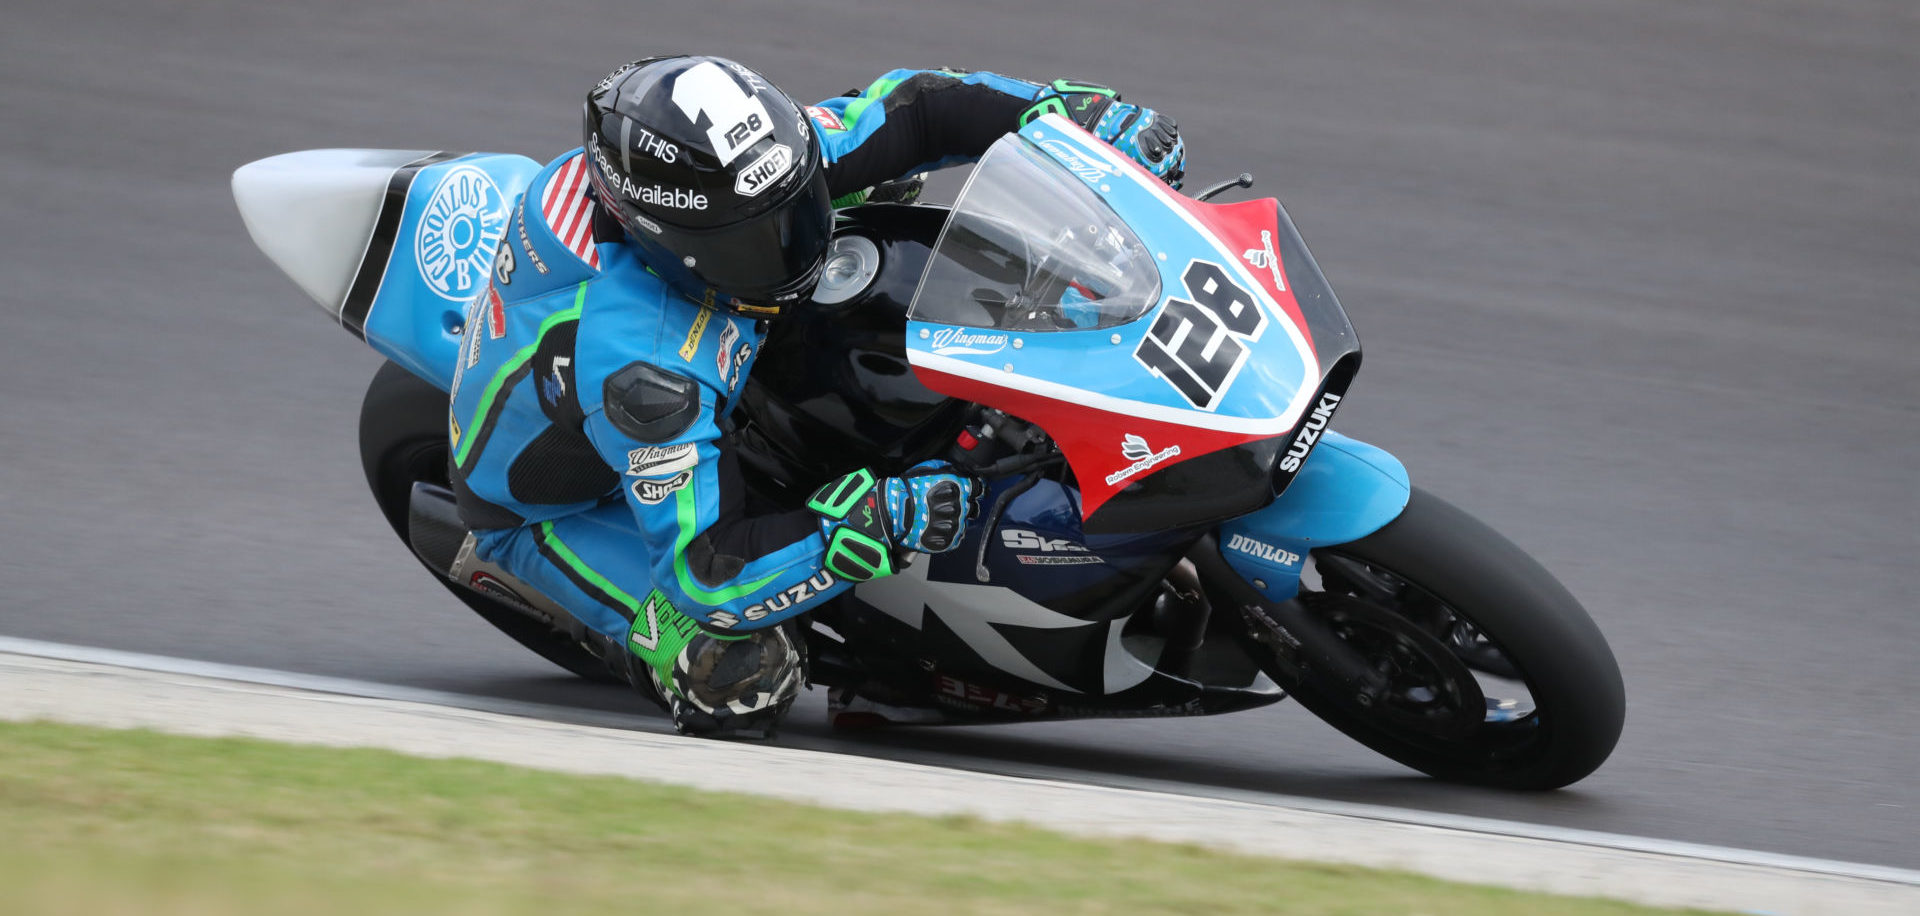 Chris Parrish (128) won two WERA National races Sunday at Barber Motorsports Park. Photo by Brian J. Nelson.